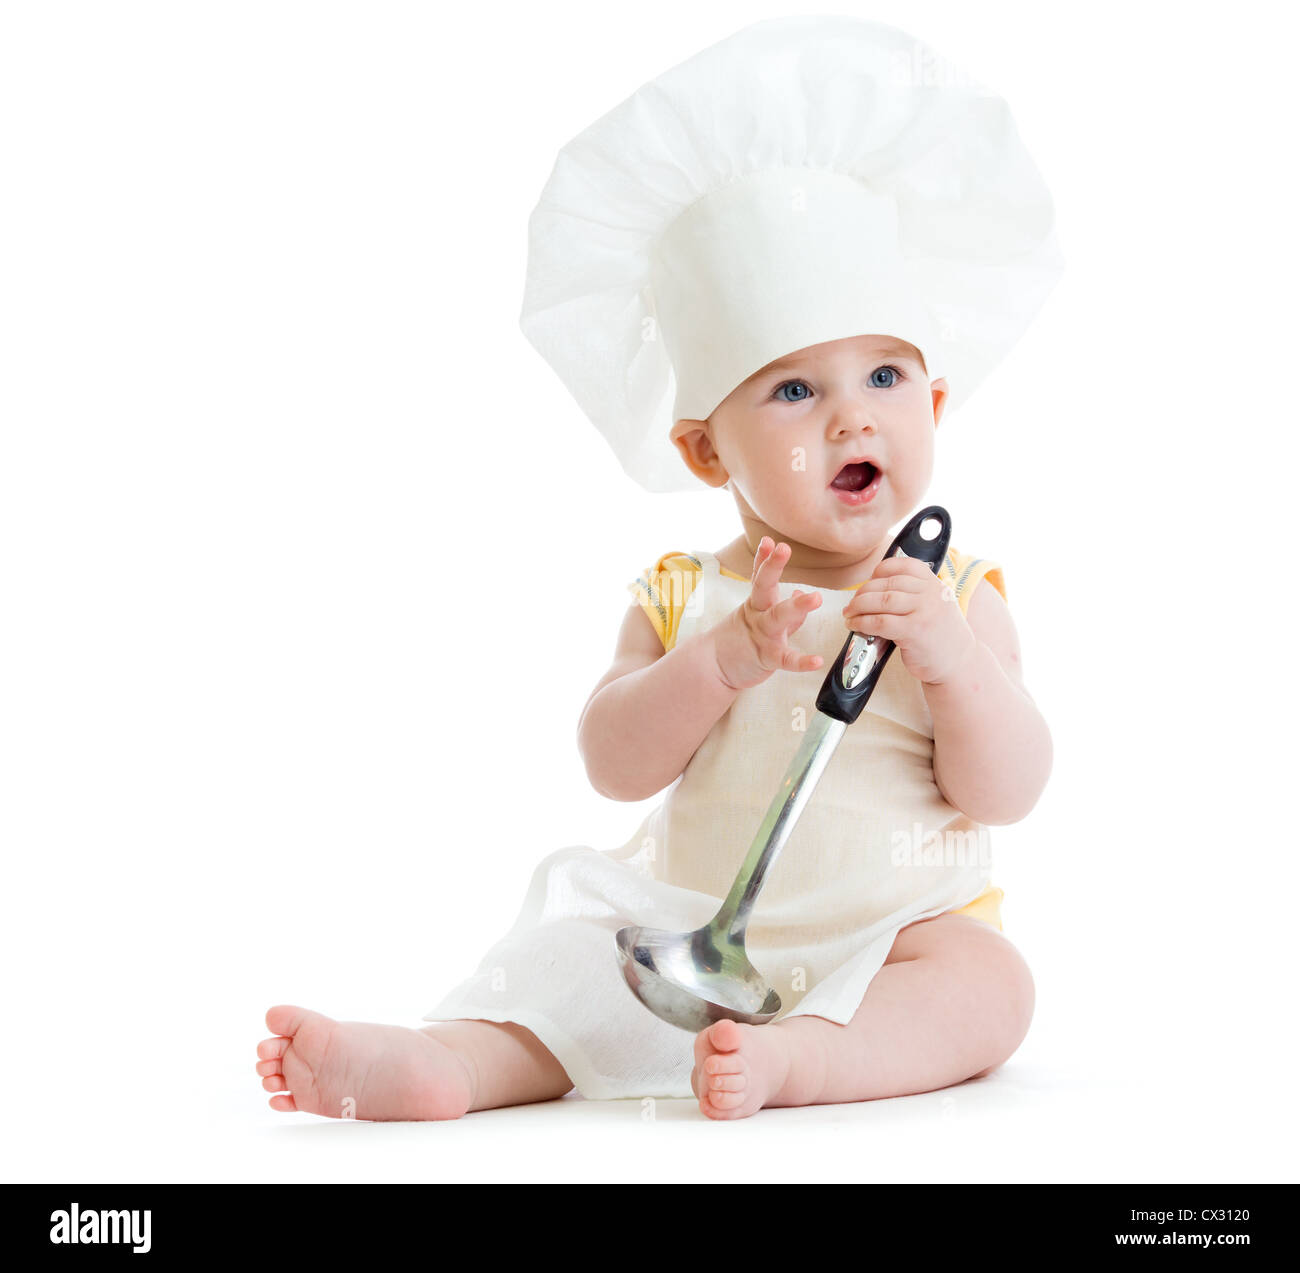 Little boy with metal ladle and cook hat isolated Stock Photo ... 52015d2e6fb2